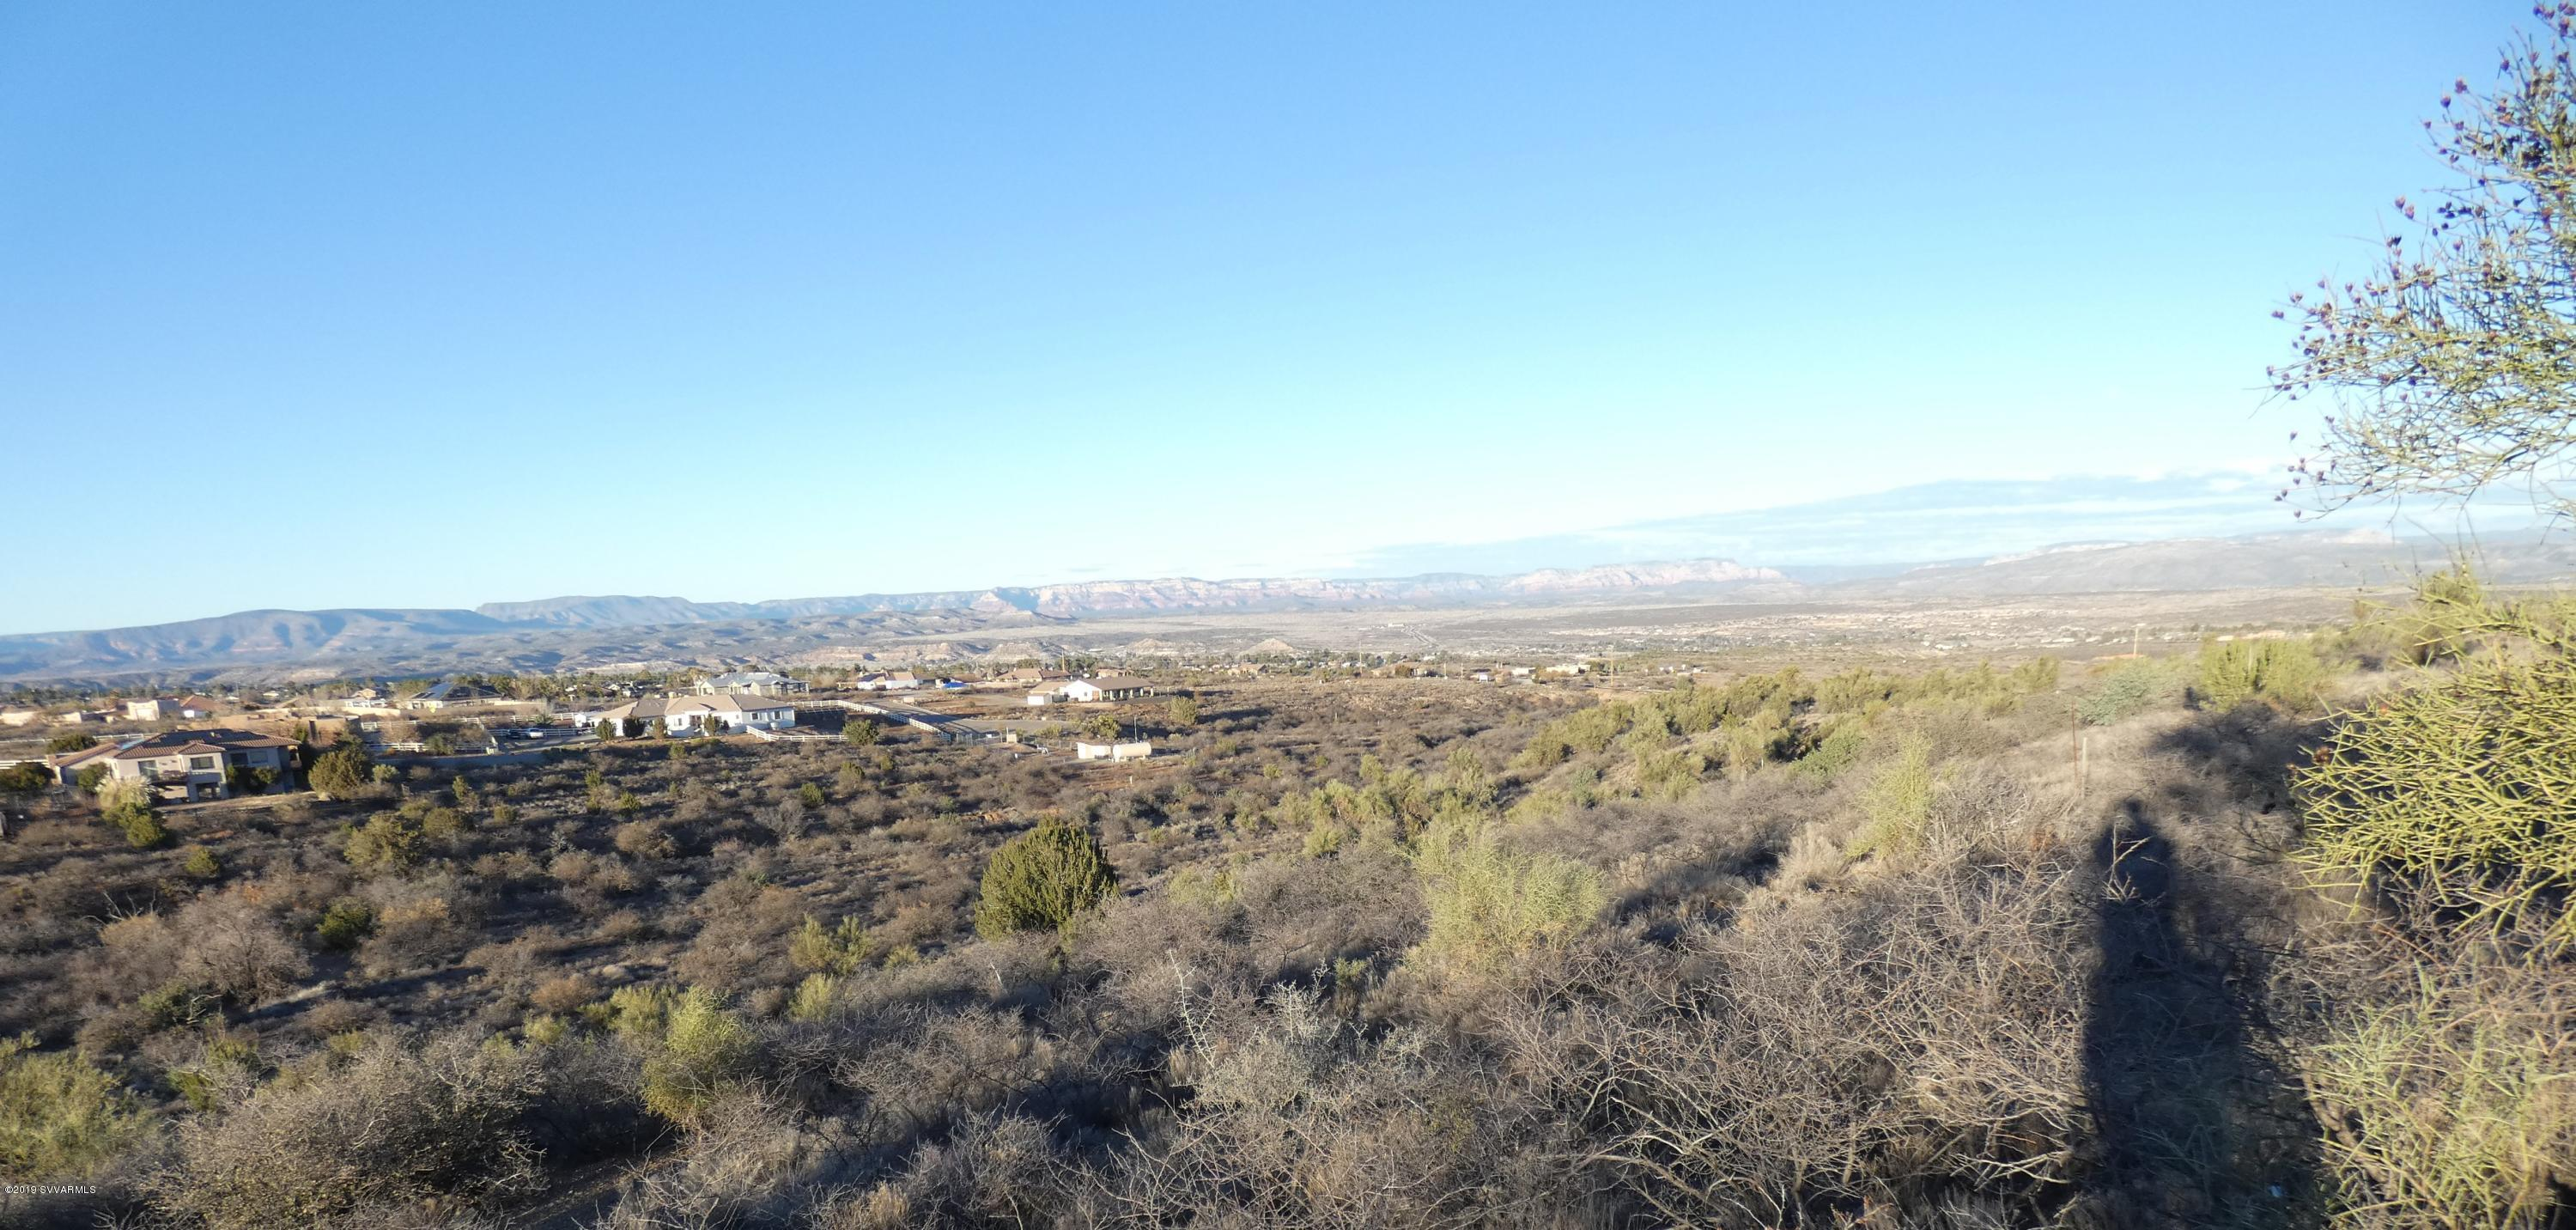 Tbd-1 S Loreto Trail Cottonwood, AZ 86326